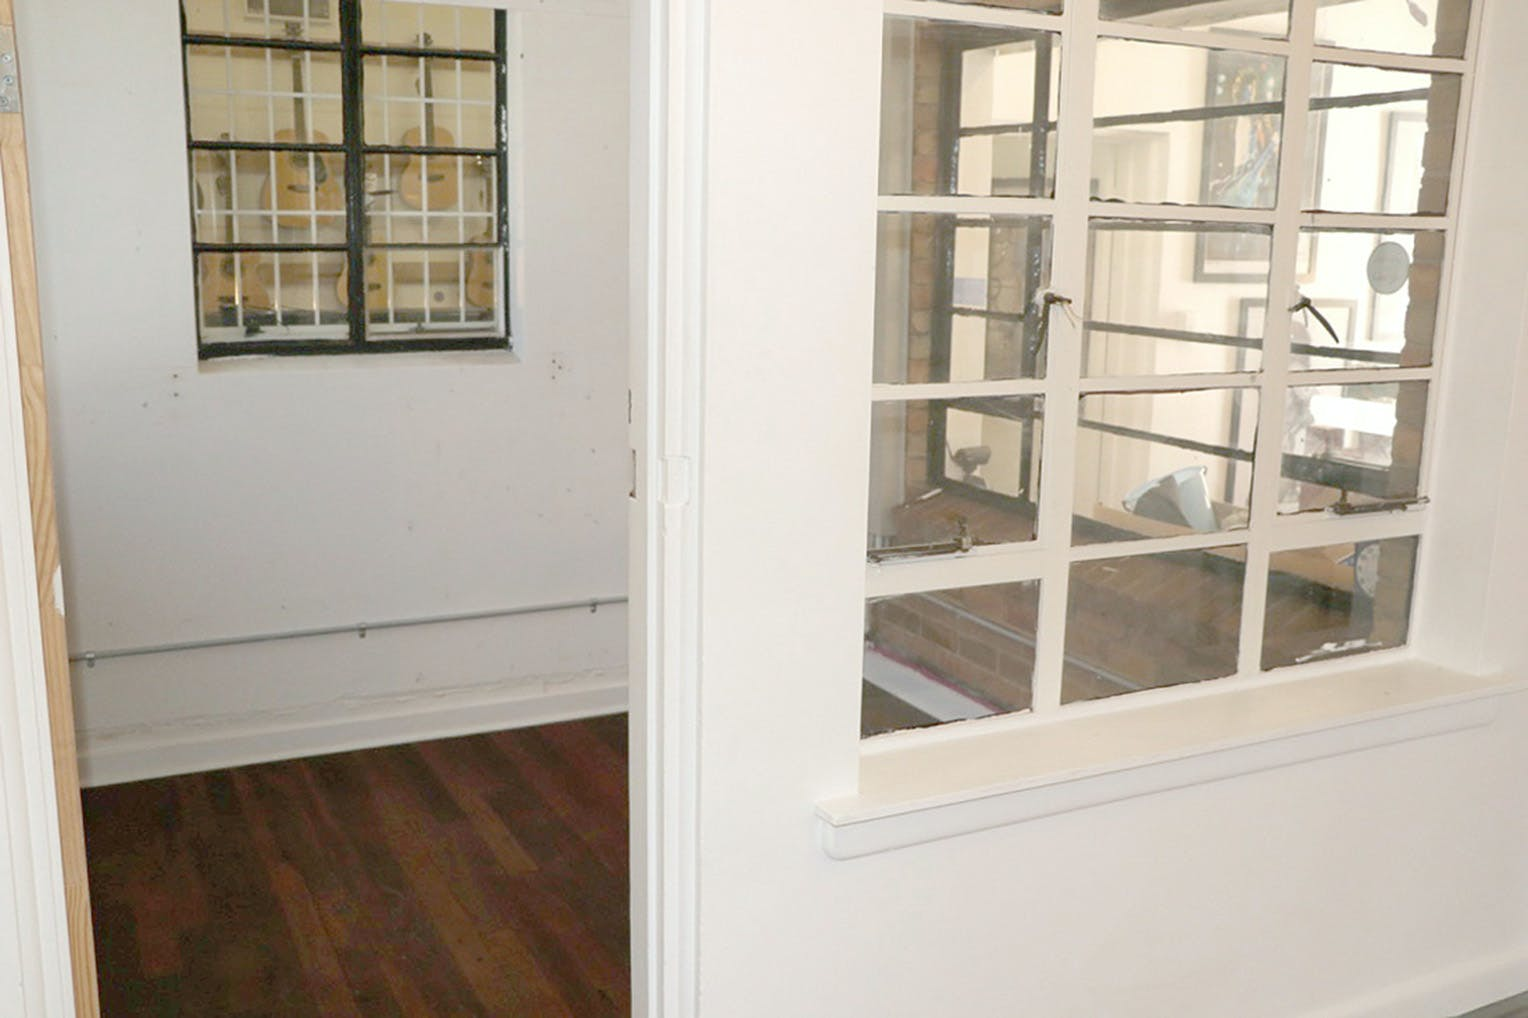 3 Rooms 30 sq meters, multi-use area at The Guitar Colonel, image 4